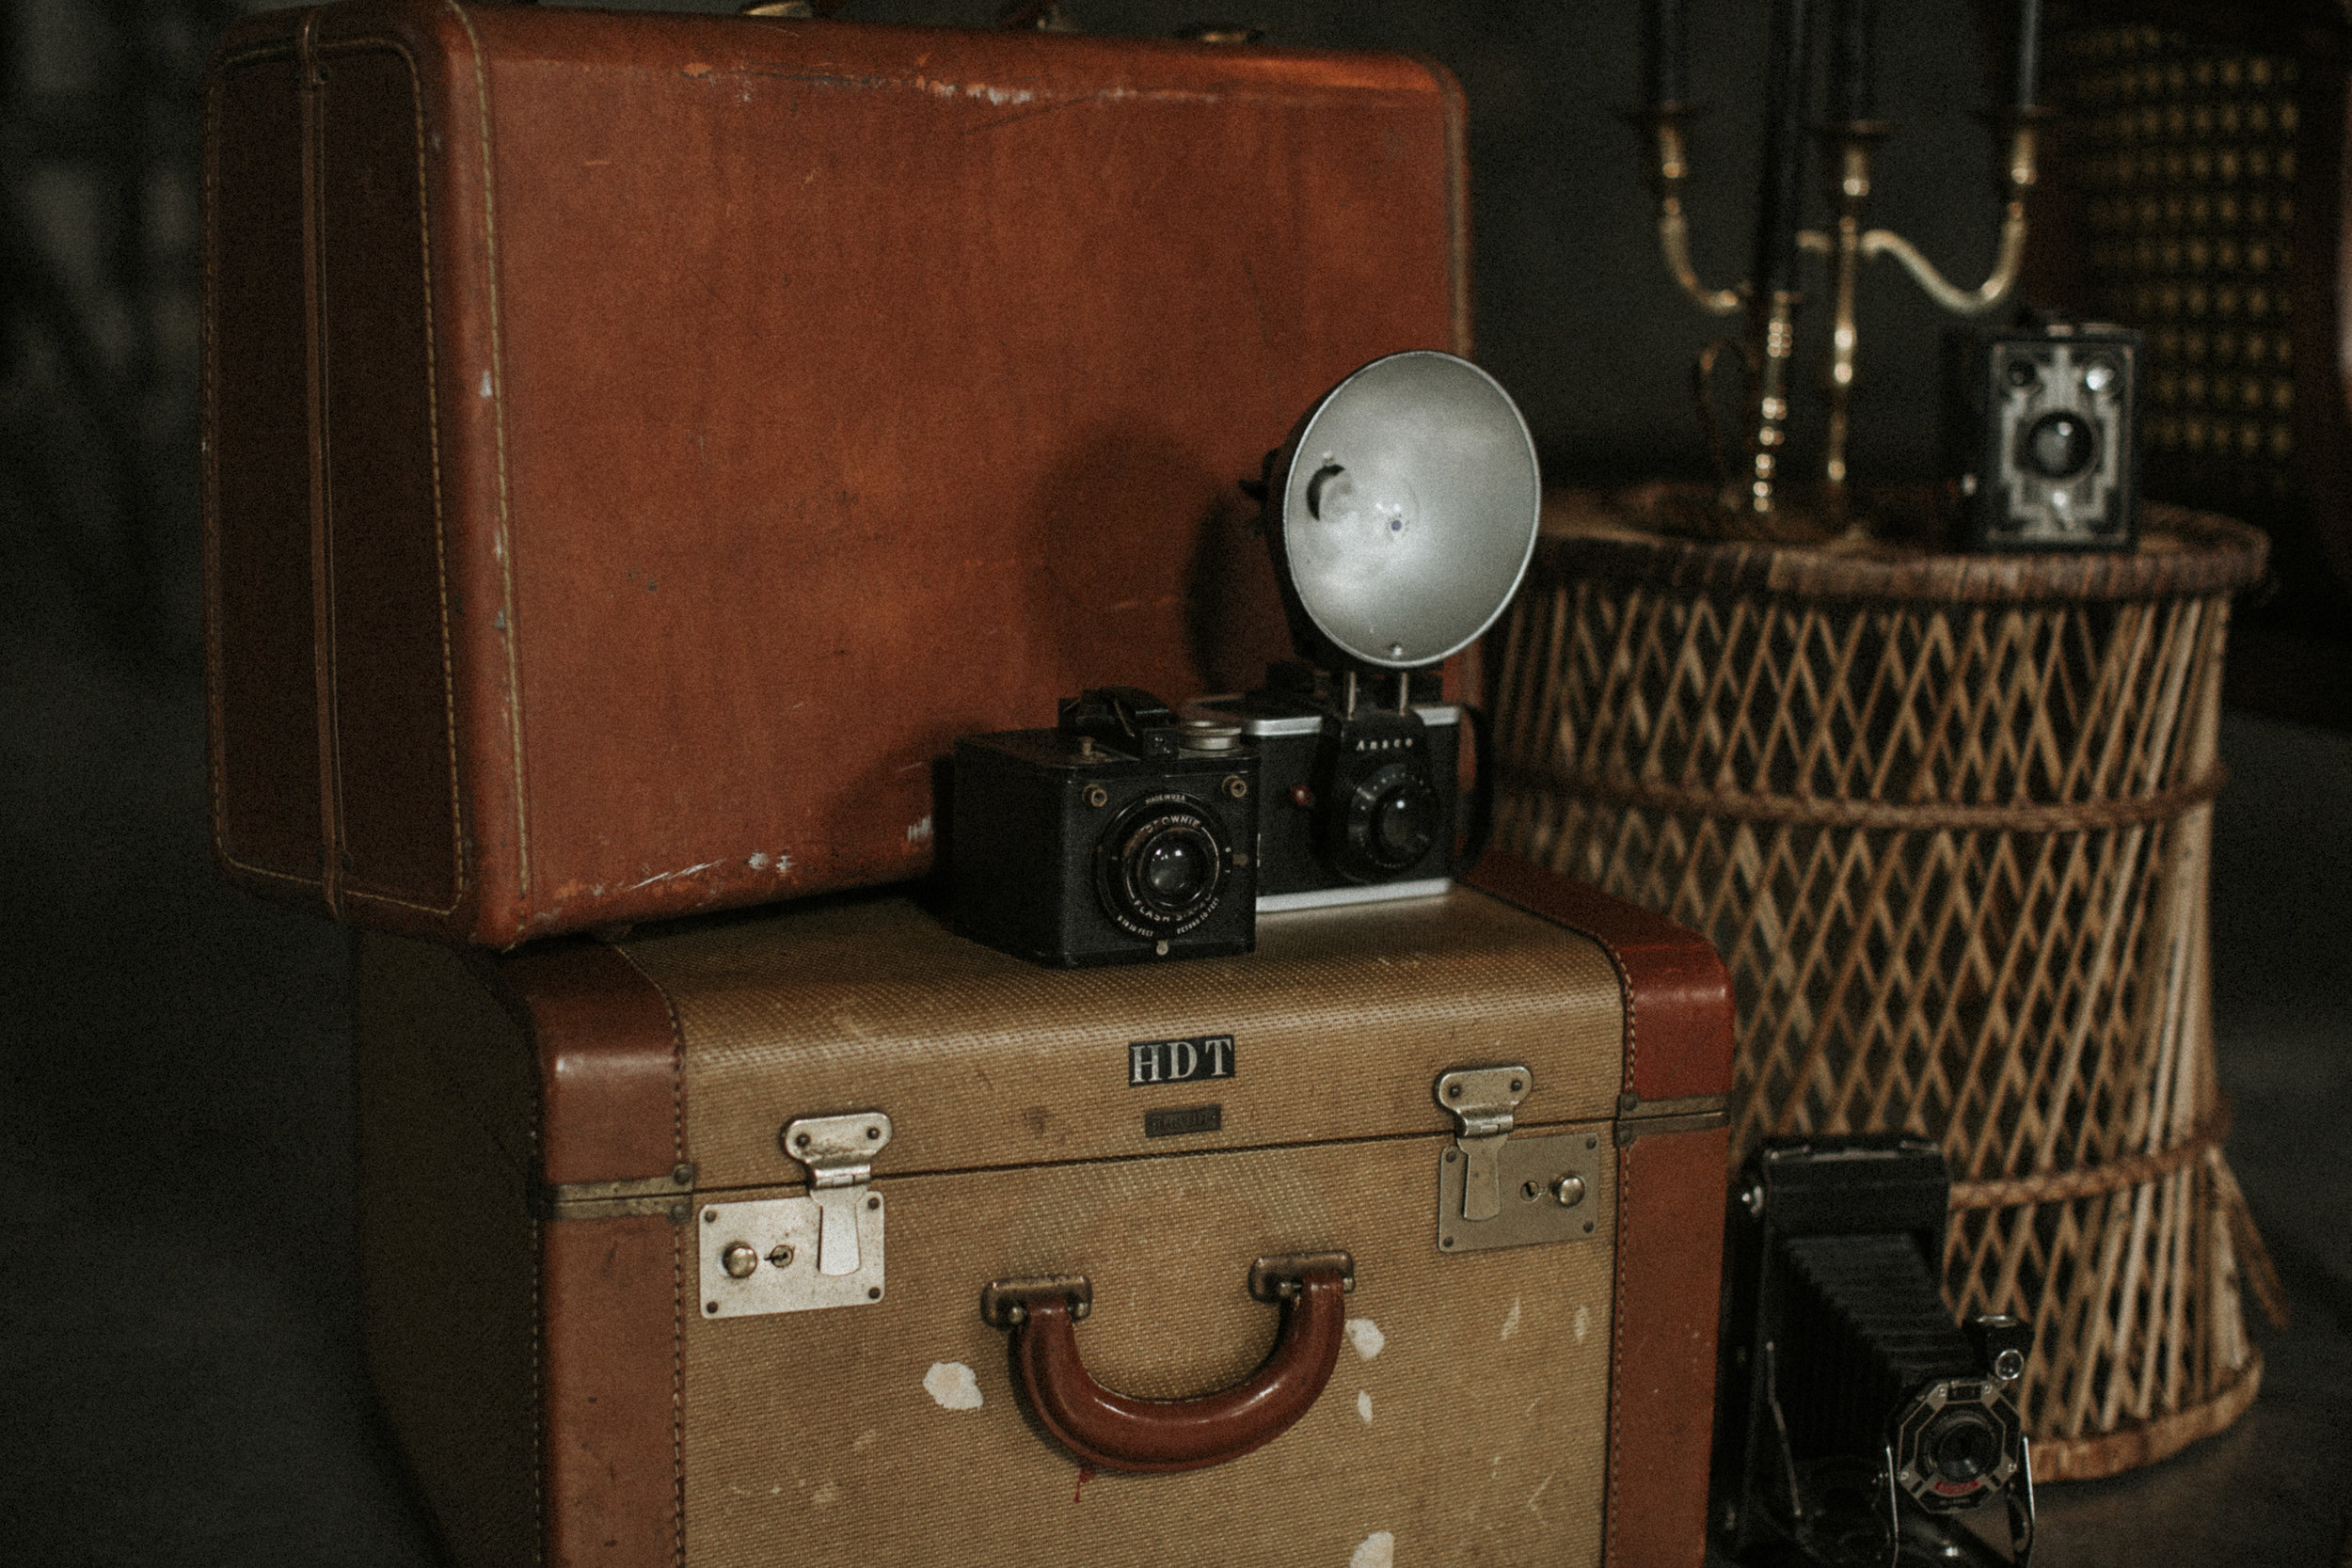 Accessories - Our vintage accessories are a great addition to photoshoots or wedding/shower decor. We have a variety of vintage suitcases, cameras, clocks, mirrors, baskets, crates, and the list goes on.